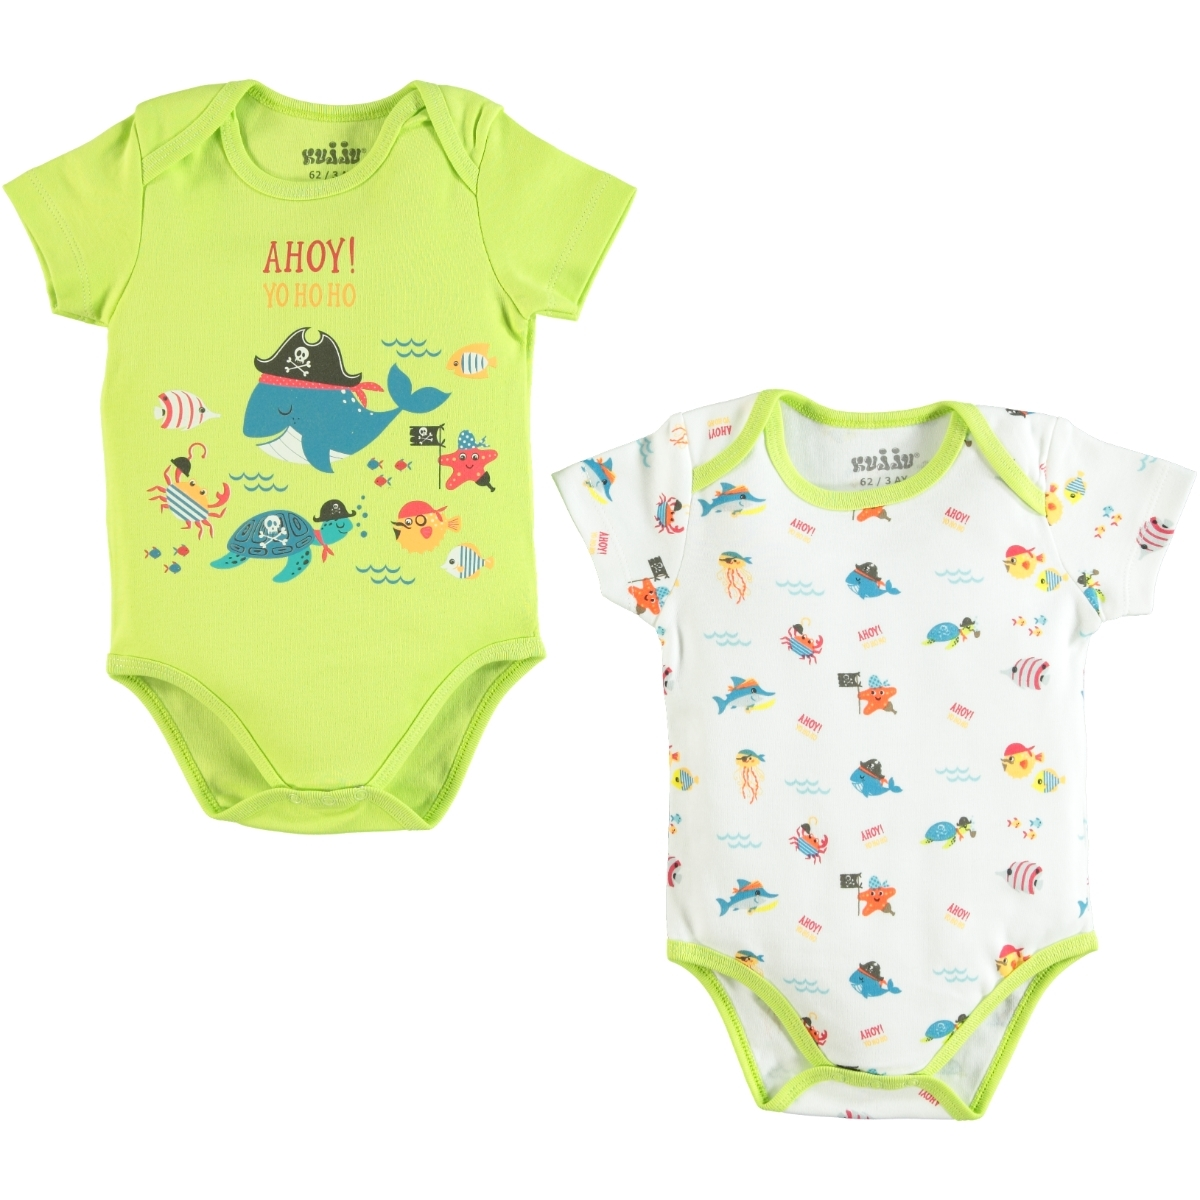 Kujju Baby boy 2-12-24 months Bodysuit with snaps Yesil